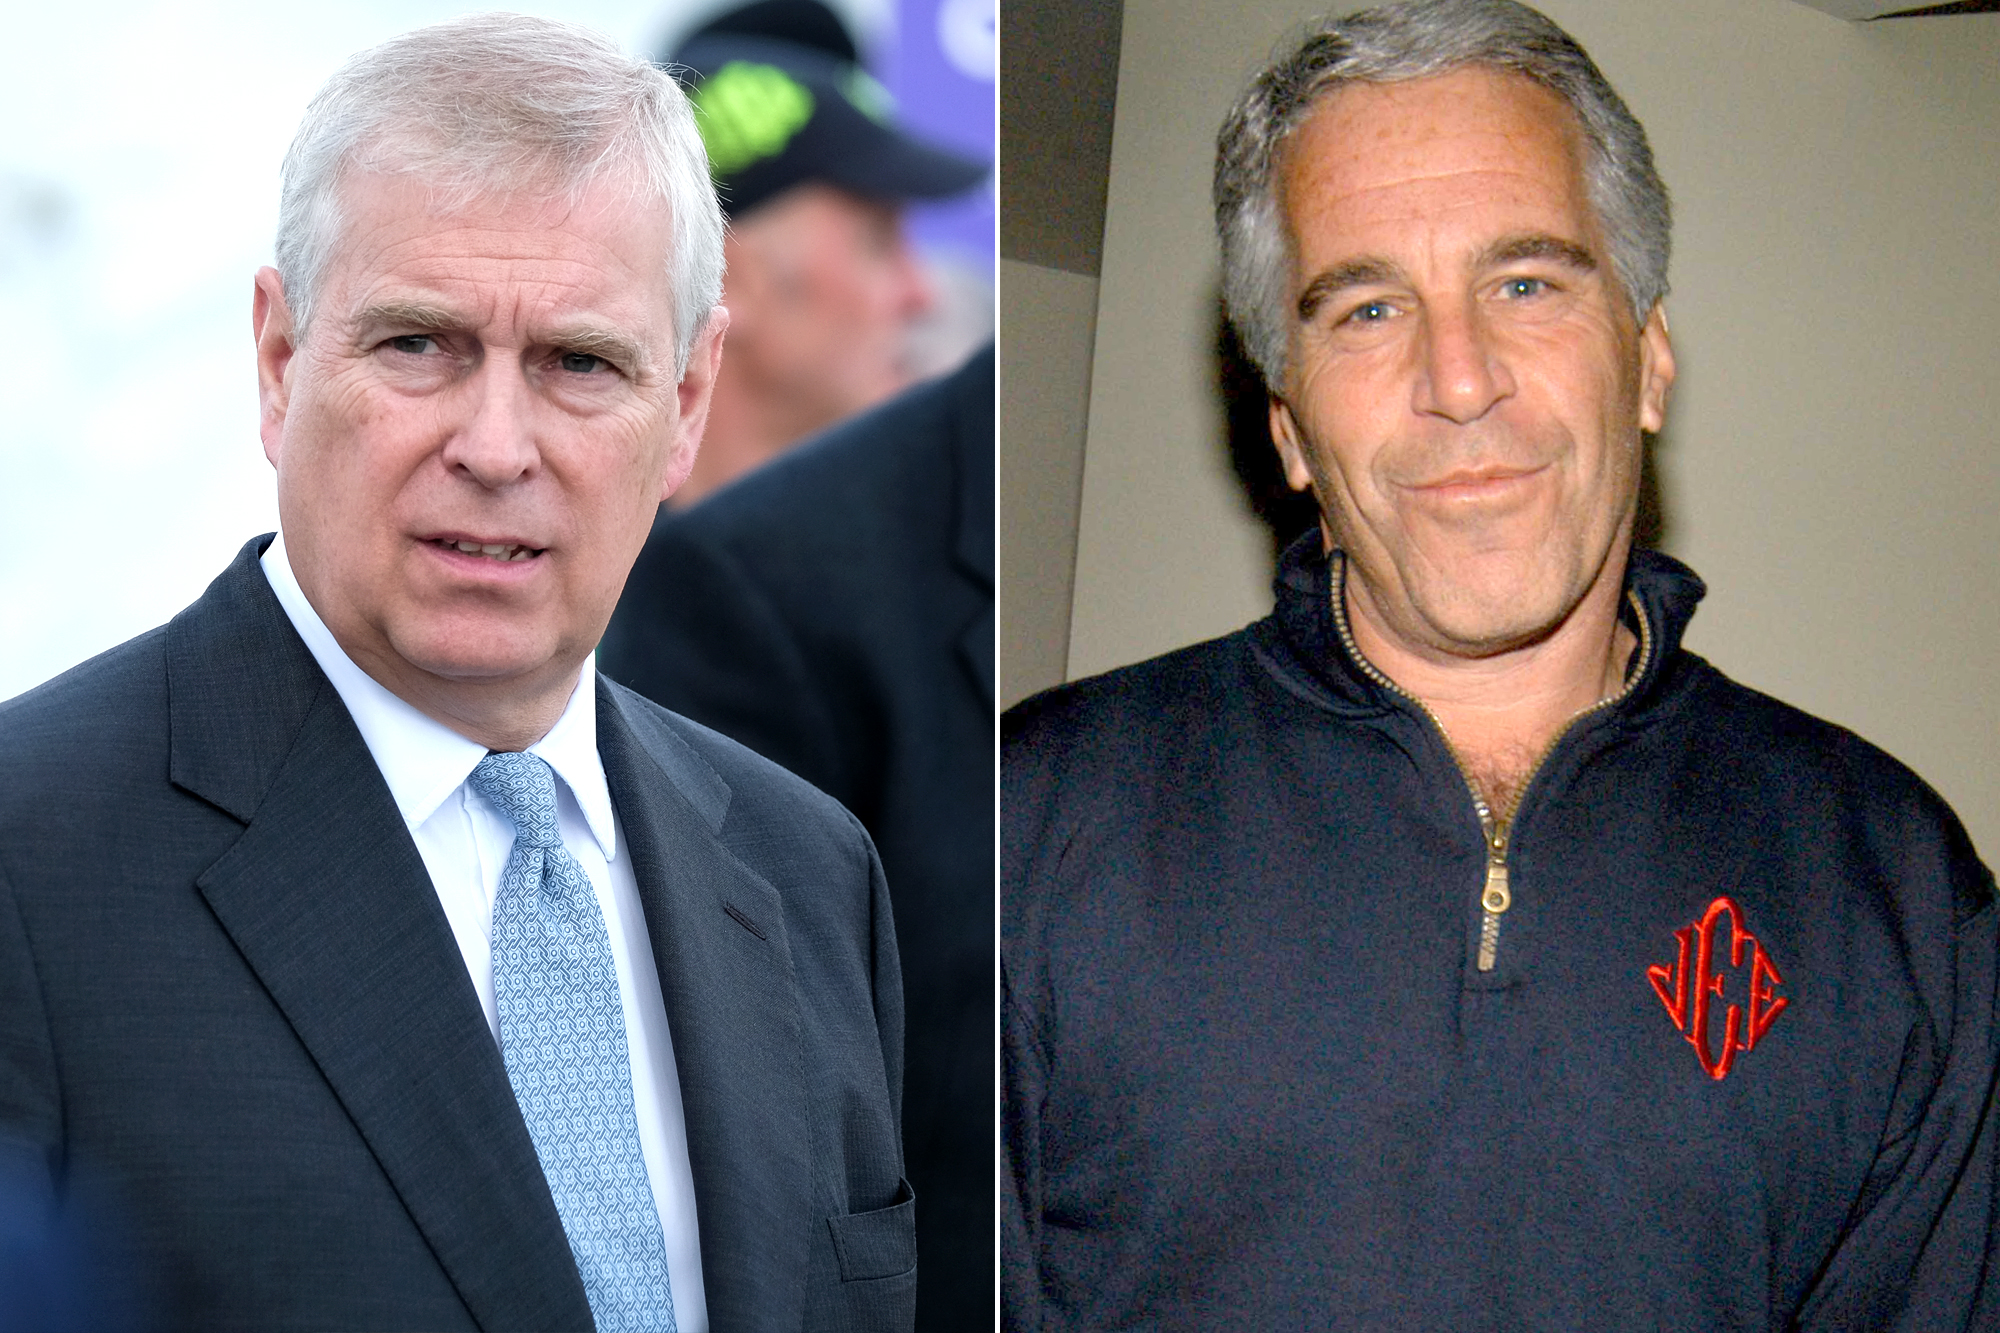 Prince Andrew Gives Interview About His Ties To Jeffrey Epstein